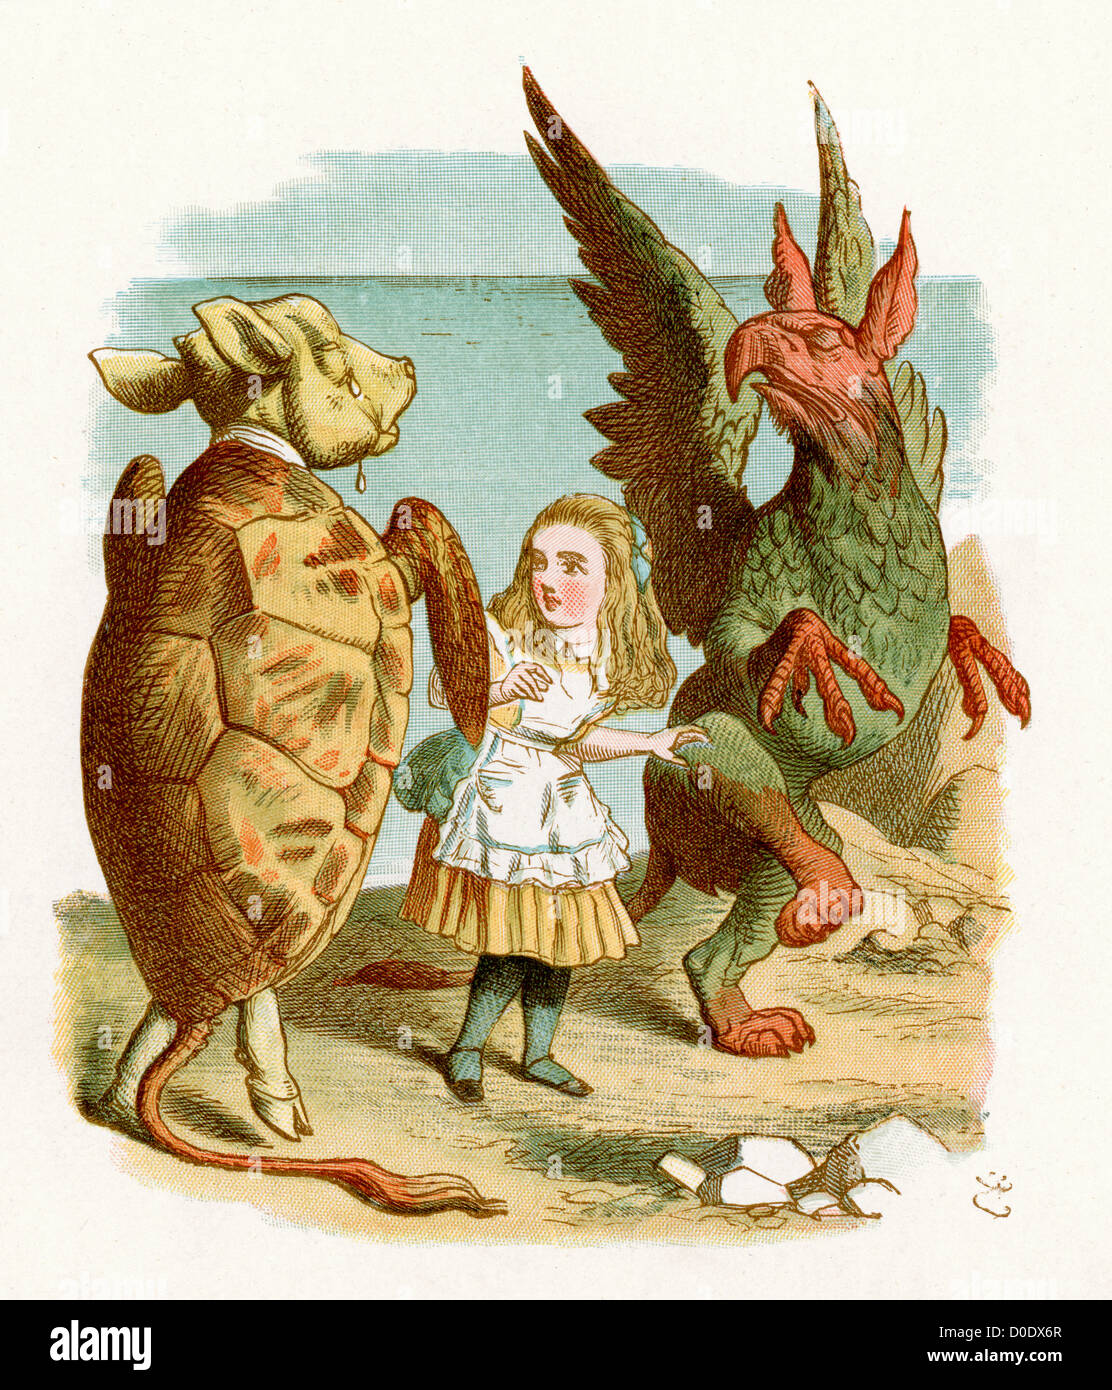 The Gryphon and Mock Turtle, from the Lewis Carroll Story Alice in Stock Photo: 51937055 - Alamy